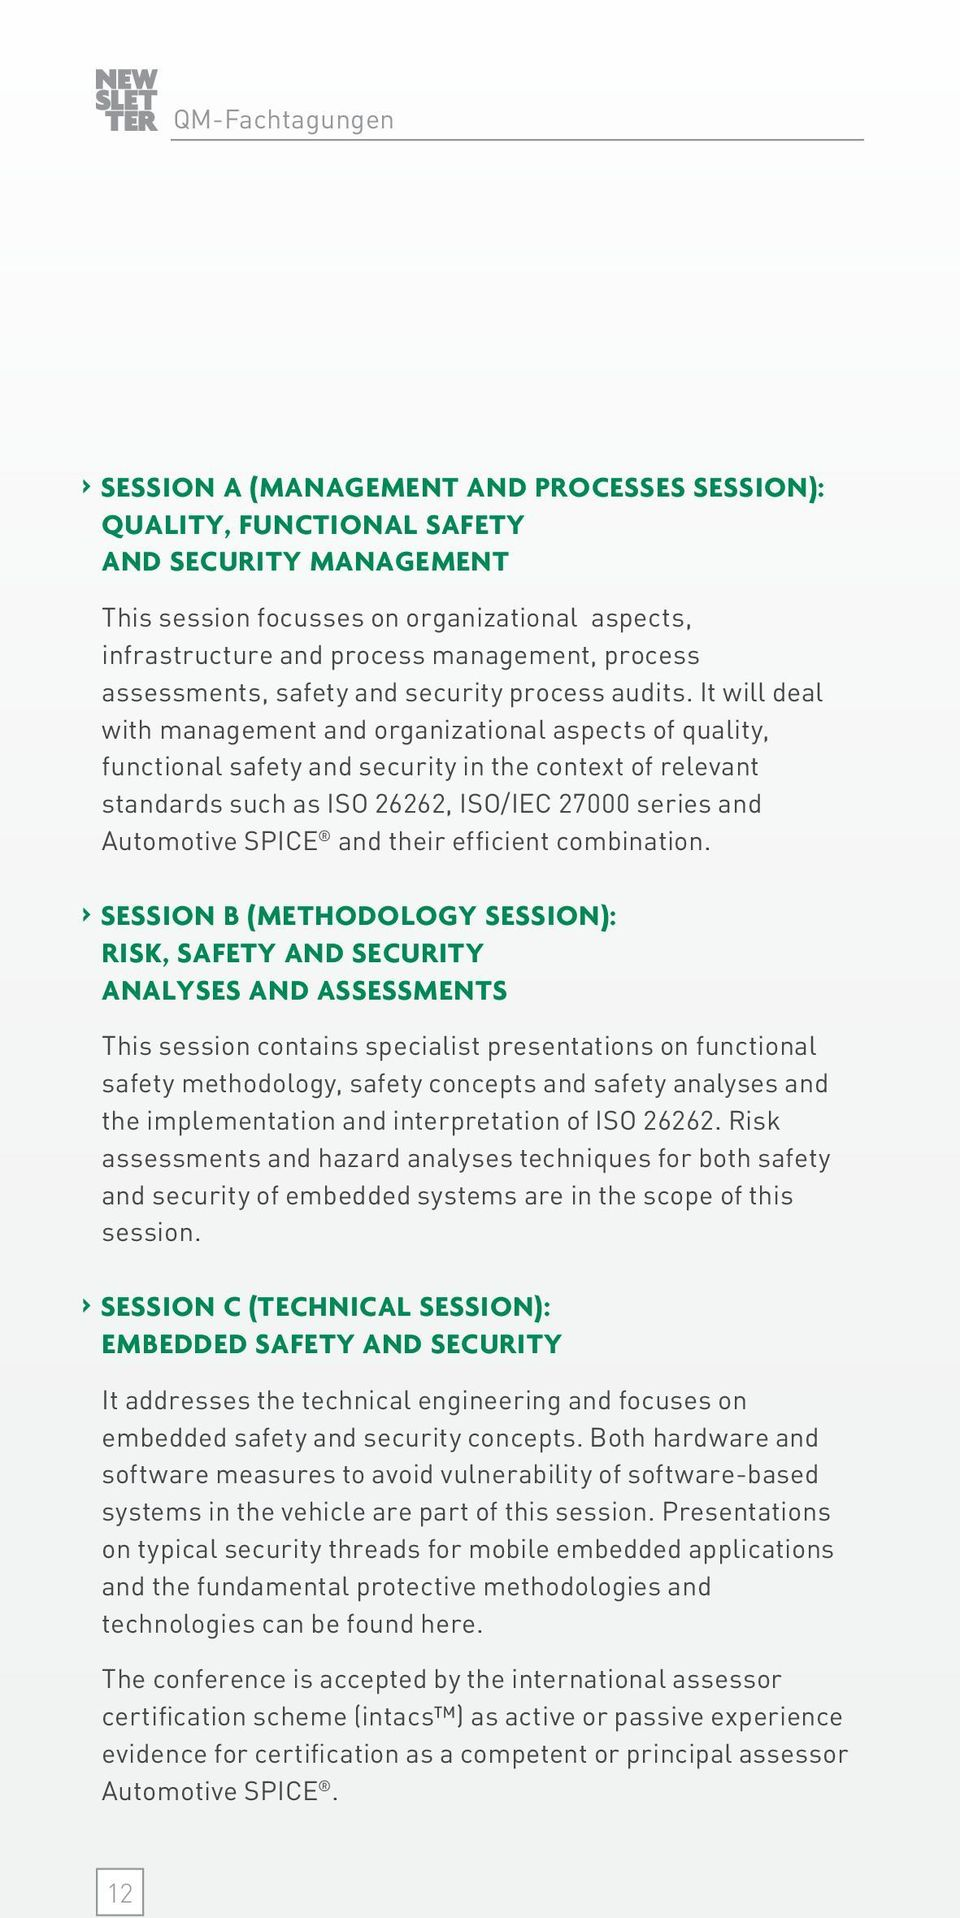 It will deal with management and organizational aspects of quality, functional safety and security in the context of relevant standards such as ISO 26262, ISO/IEC 27000 series and Automotive SPICE